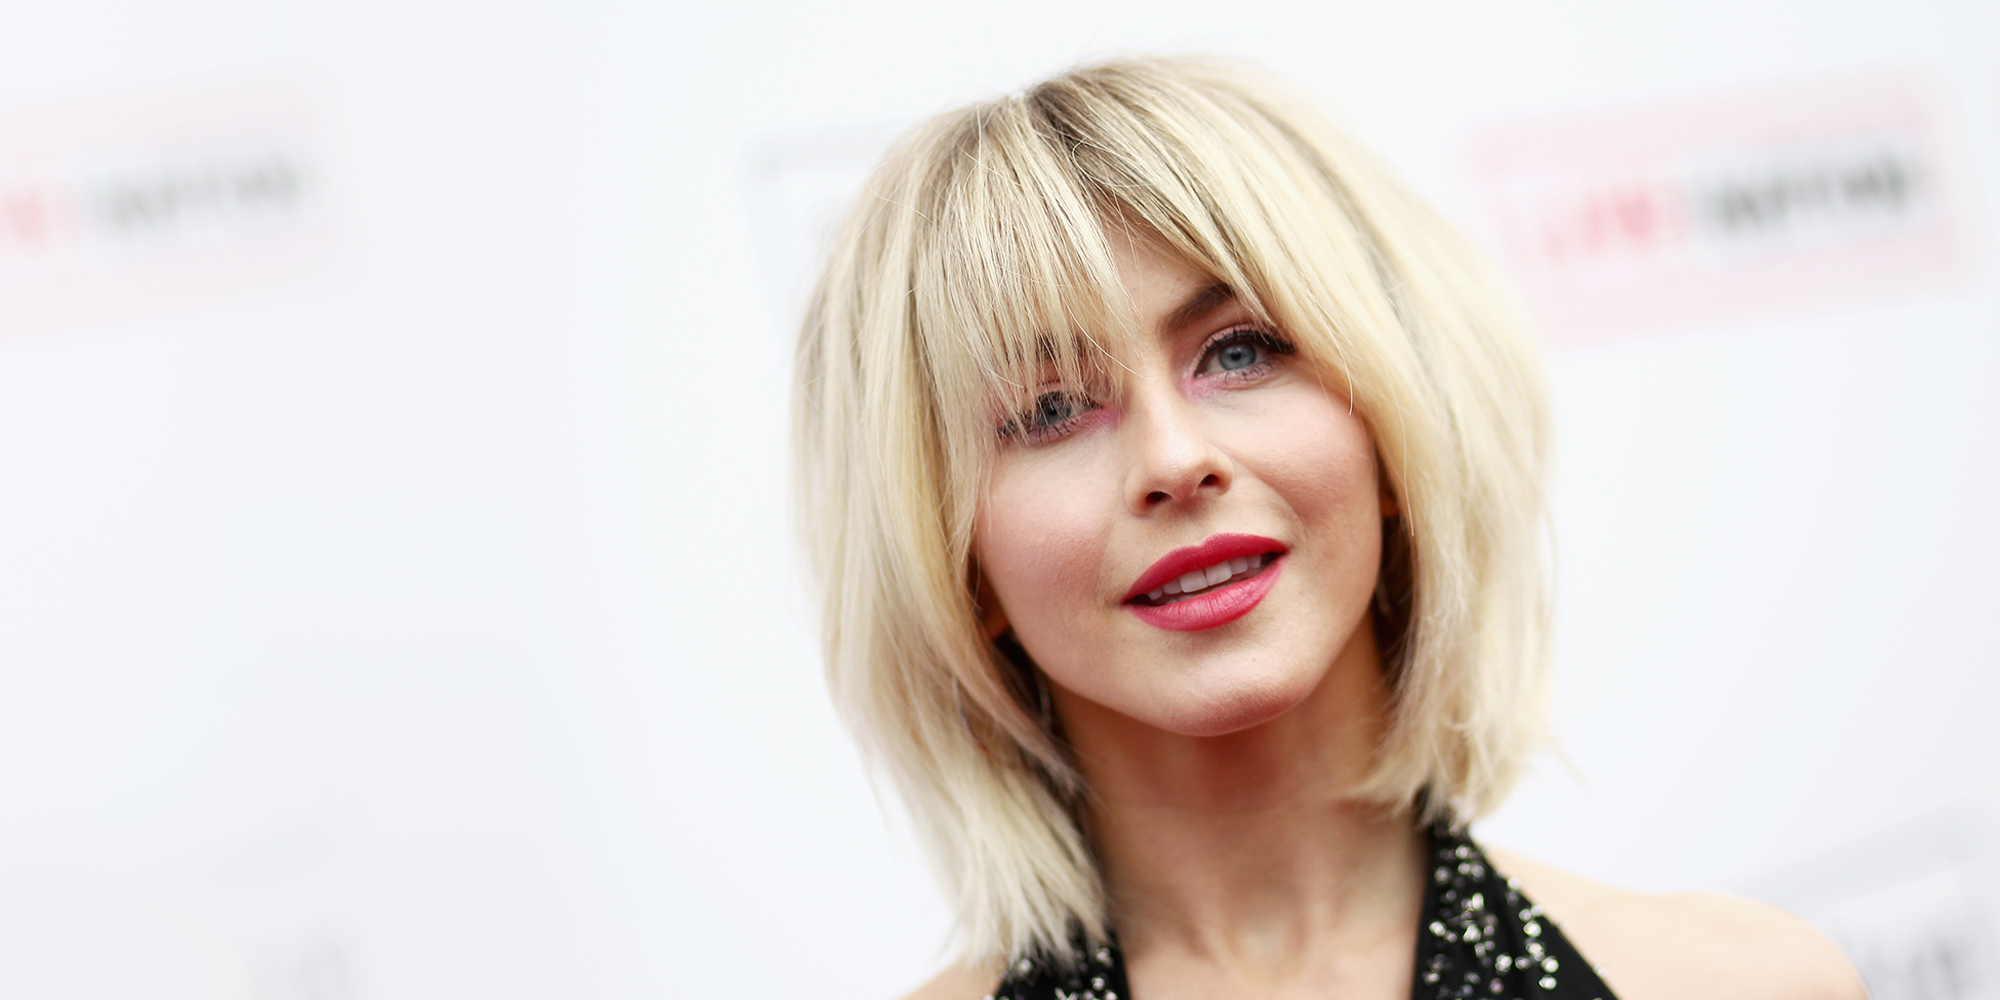 Hairstyle with bangs Some Ideas Which Can Be Uber-Cool